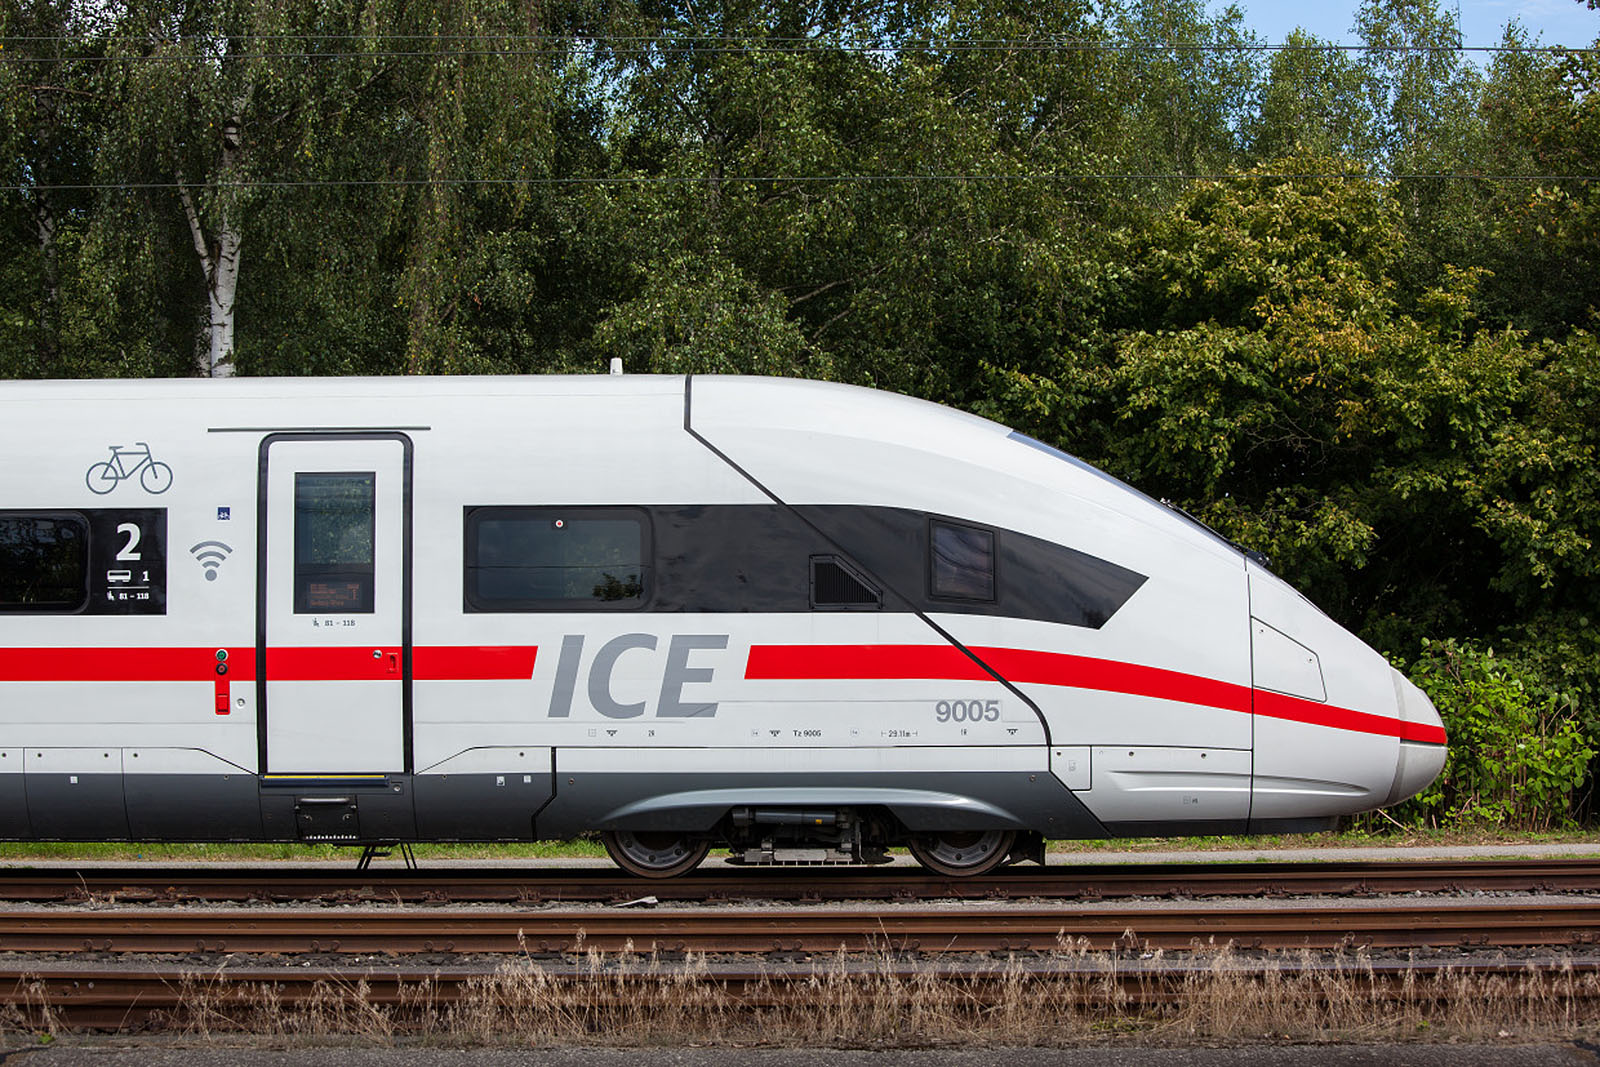 siemens_ice4_db09db